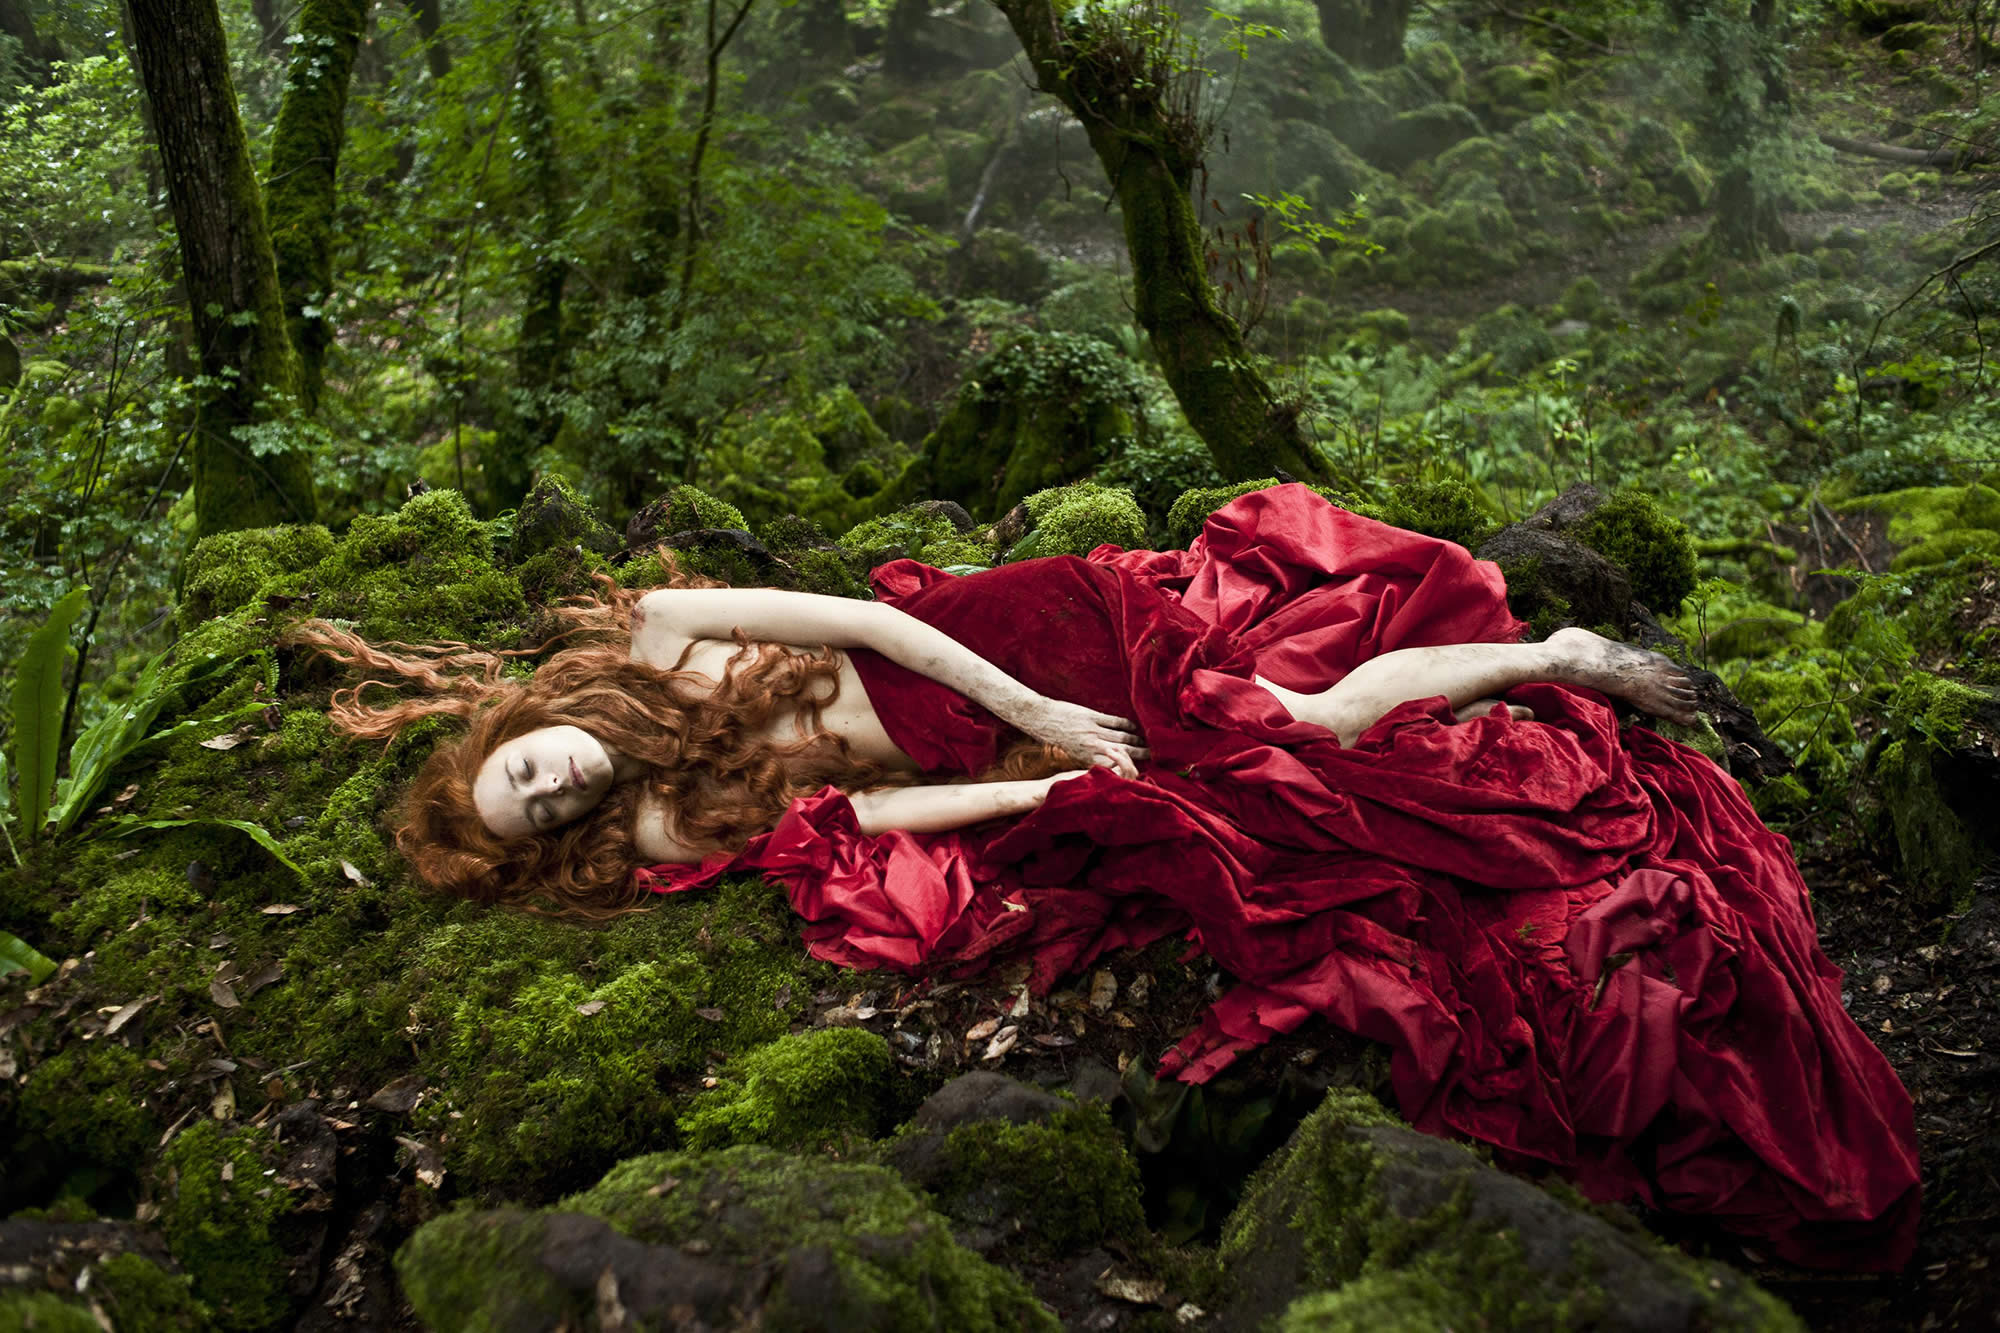 woman in red dress lying on the forest floor, Tale of Tales